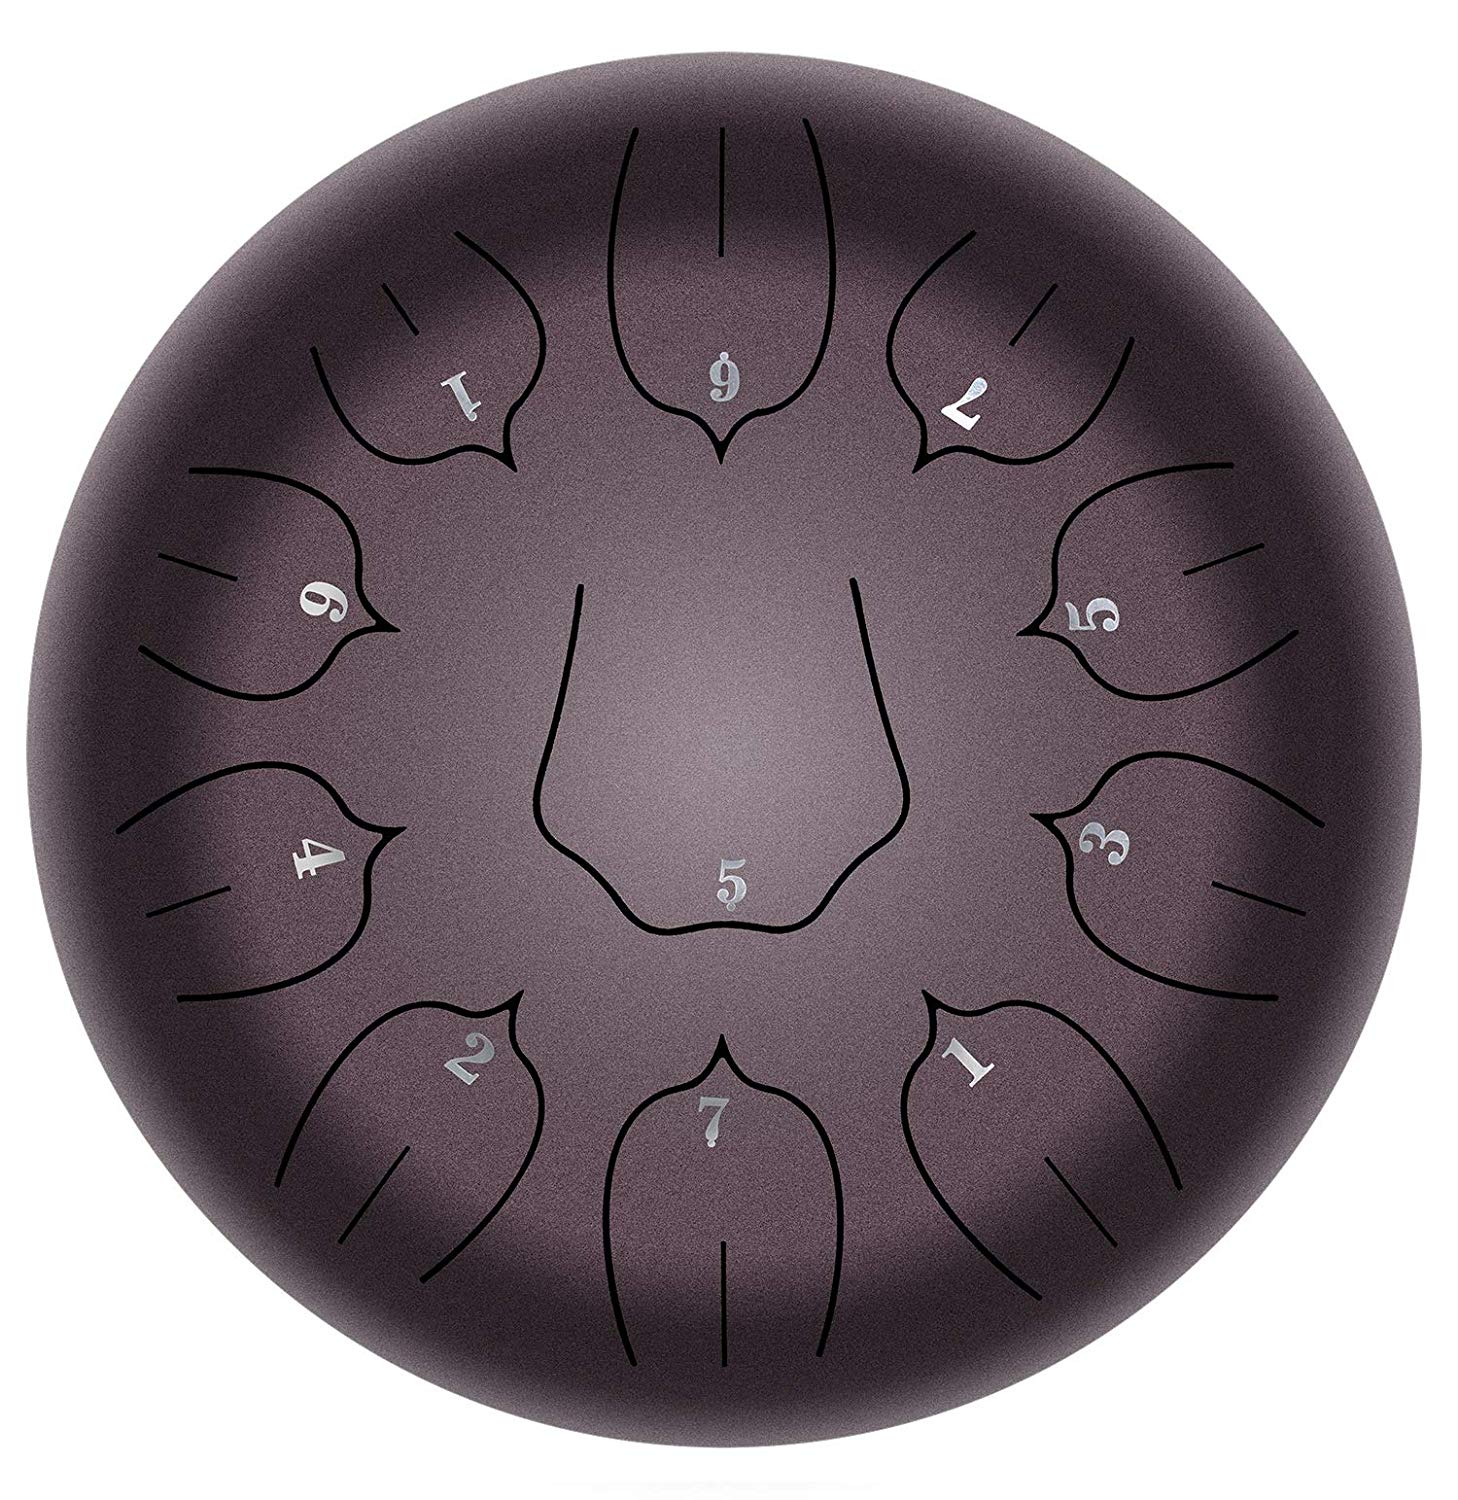 🎉Christmas Sale 30% OFF - Alloy Steel Tongue Drum